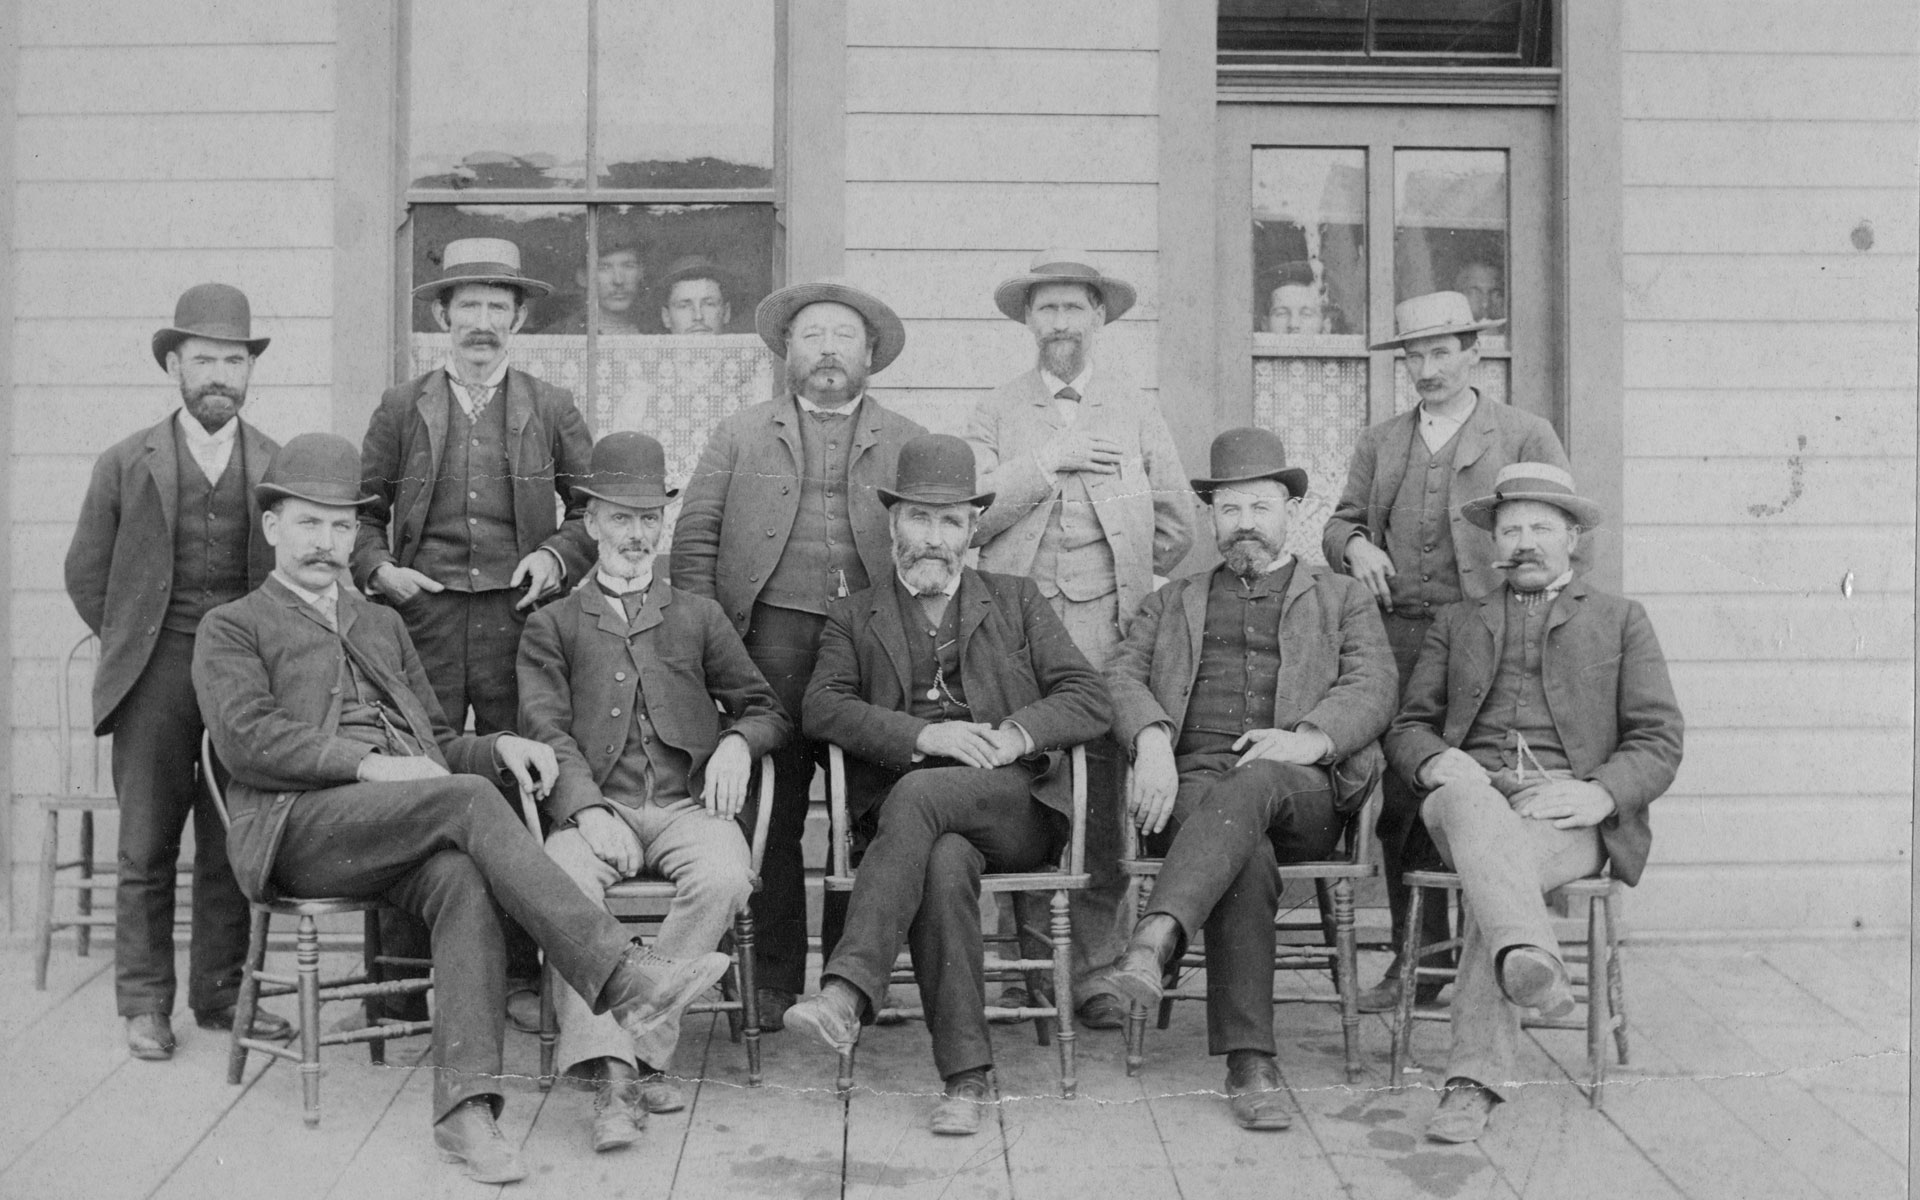 Group portrait with 5 men seated and 5 men standing behind. Four additional people are peaking out the windows of the building behind the men.